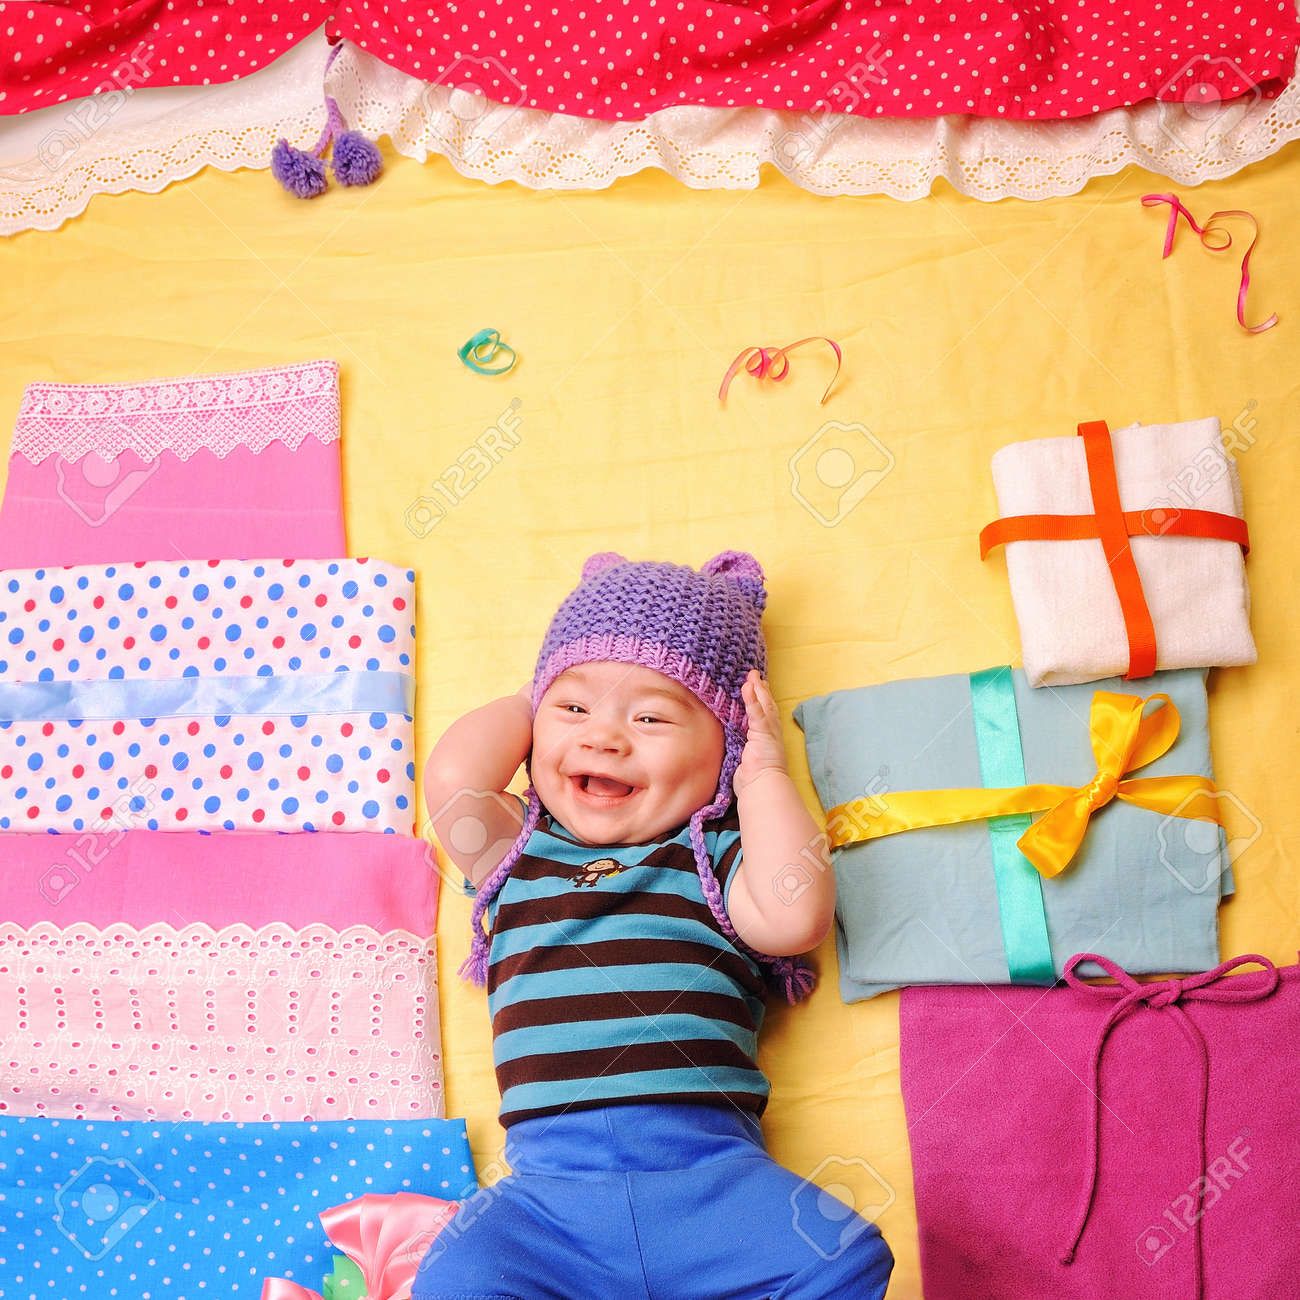 a6ebc172cdf0 Smiling Baby Boy Celebrate His First Birthday And Enjoy His Gifts ...